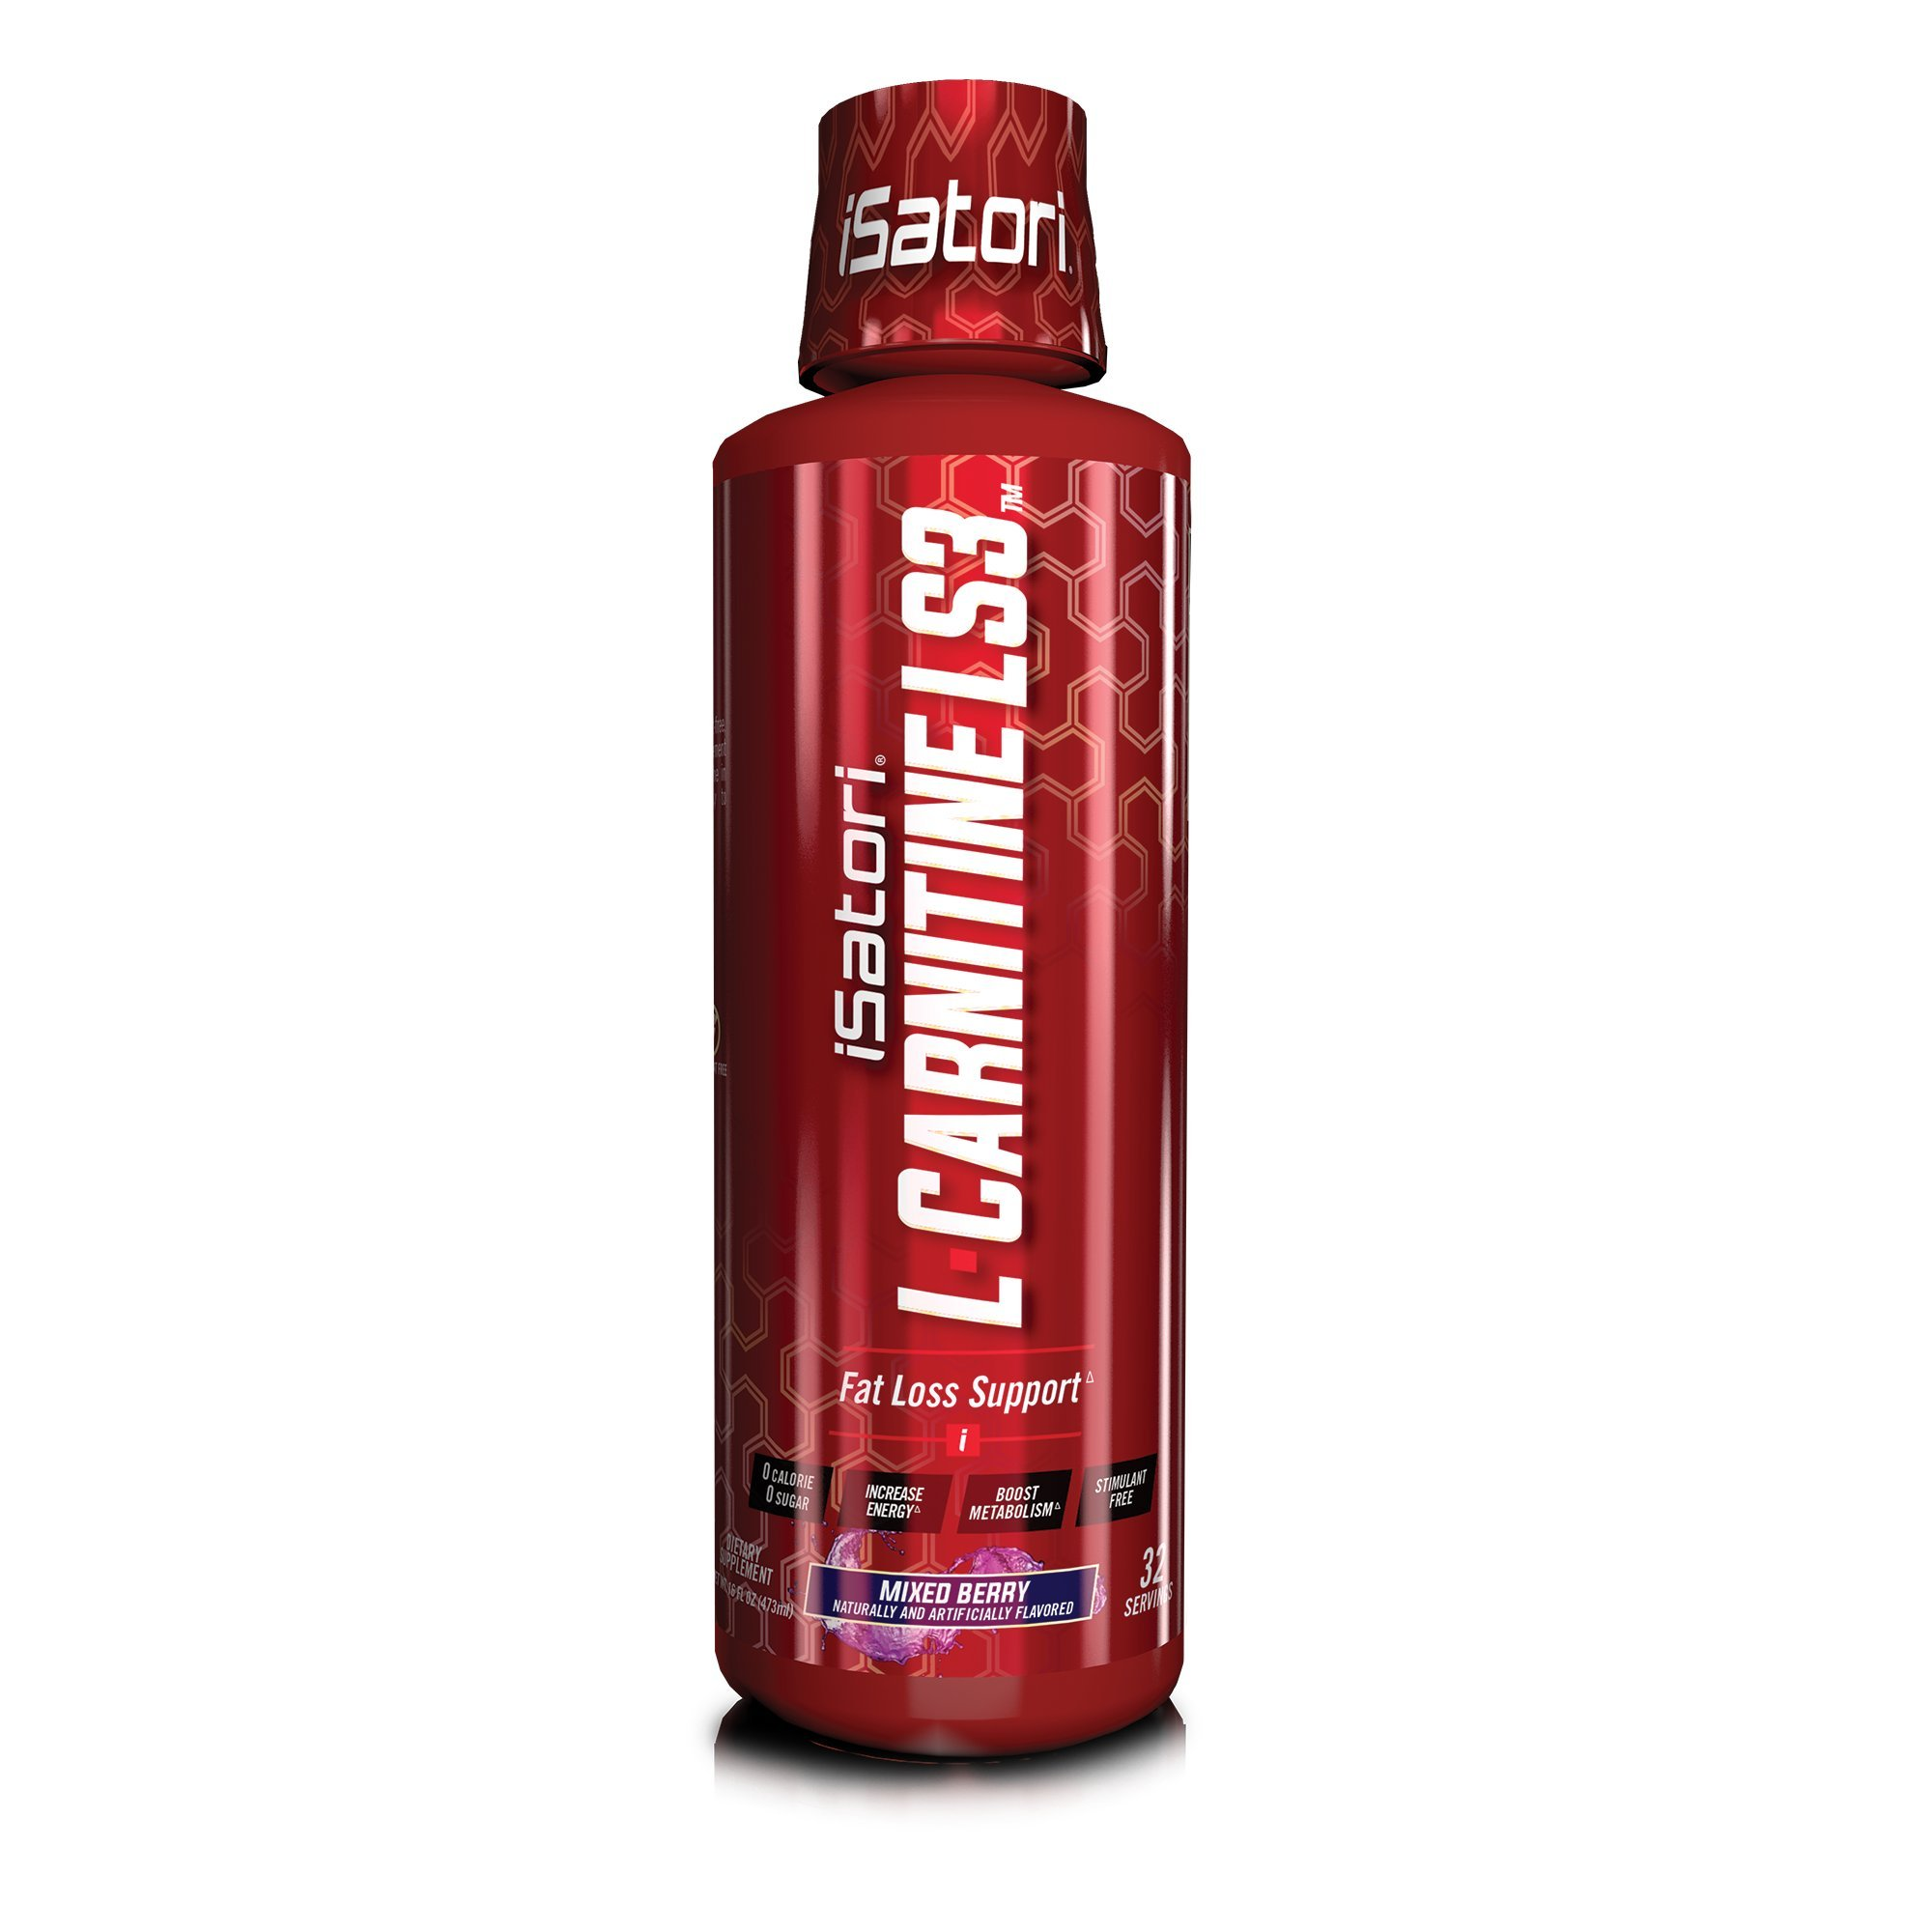 iSatori L-Carnitine LS3 Concentrated Liquid Fat Burner and Metabolism Activator - Fat Burner for Health and Fitness - -Stimulant Free Mixed Berry 1500mg - 32 Servings